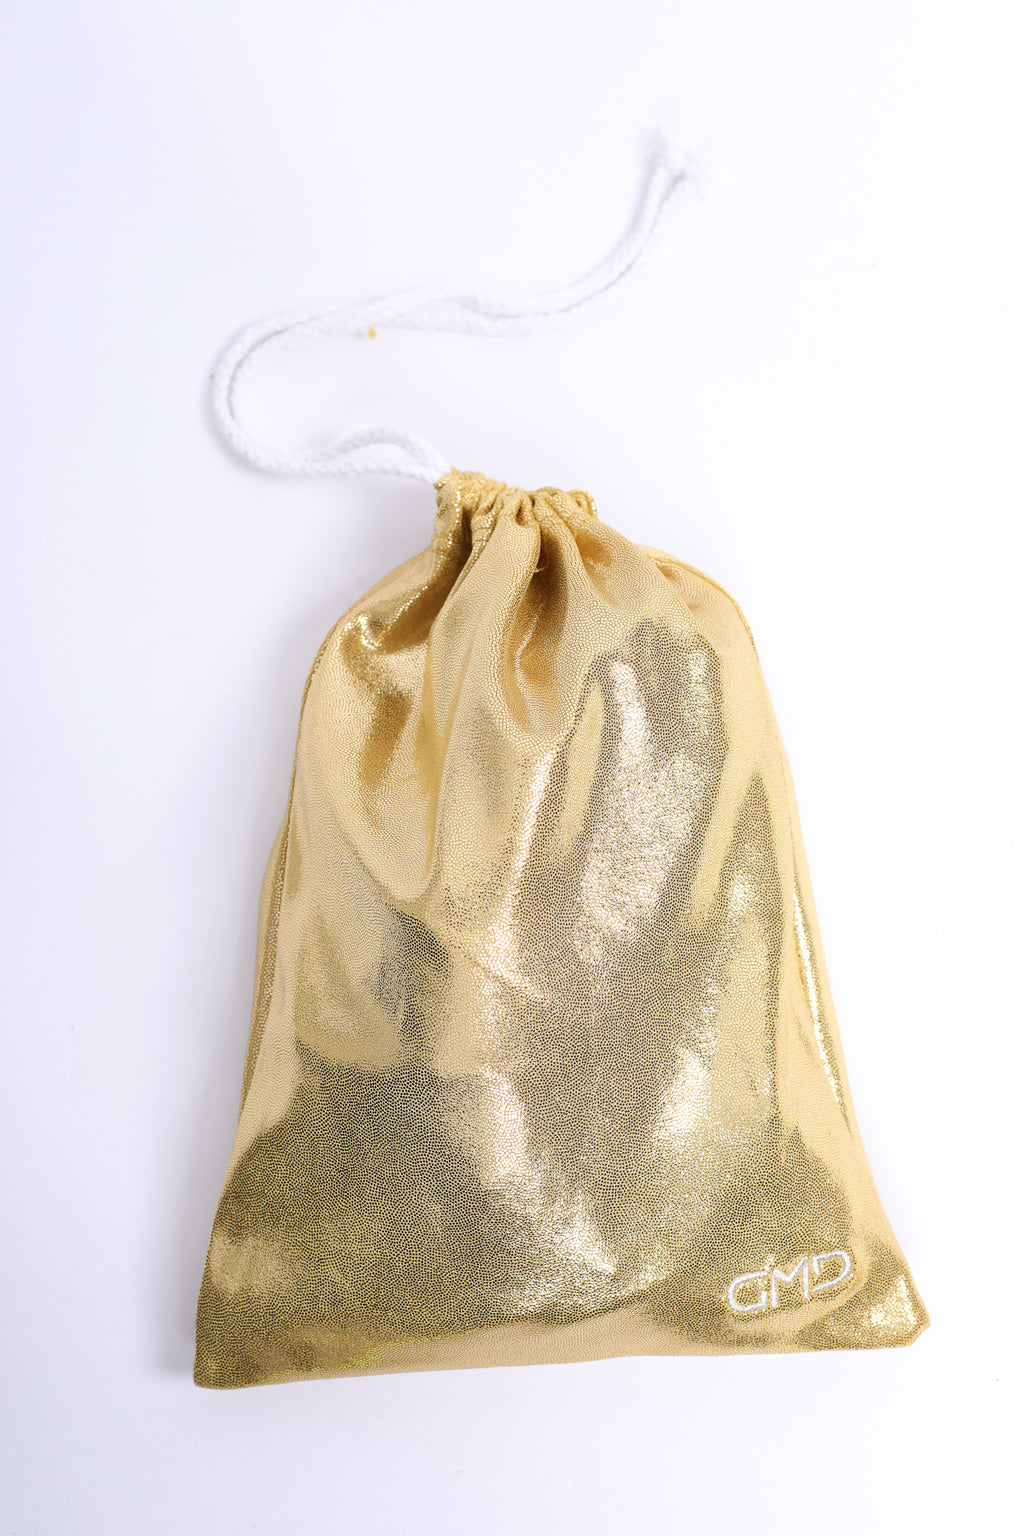 Gold Mystique Guard Bag (name optional)